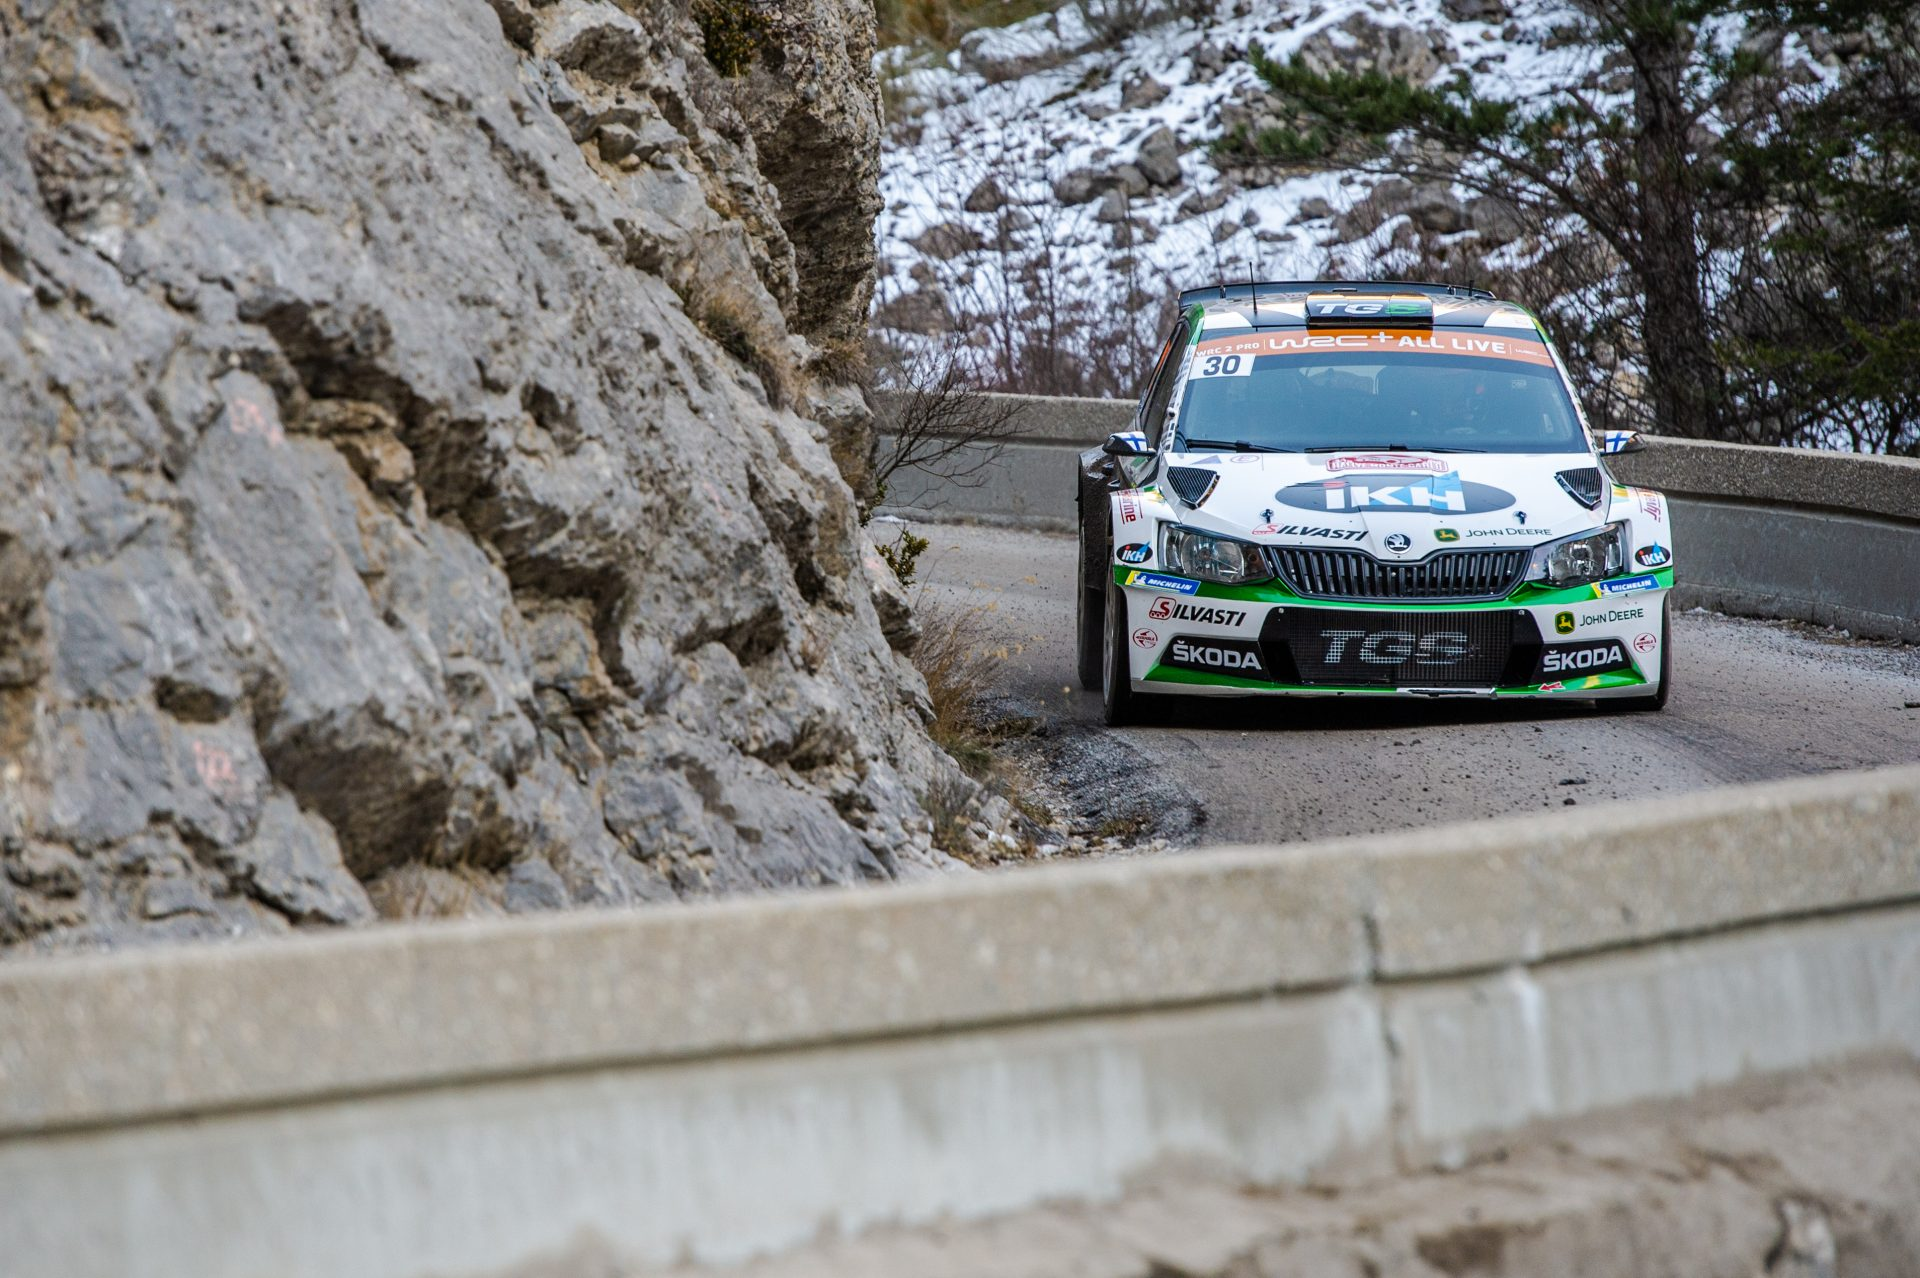 Rallye Monte Carlo 2019: Latest News and Results